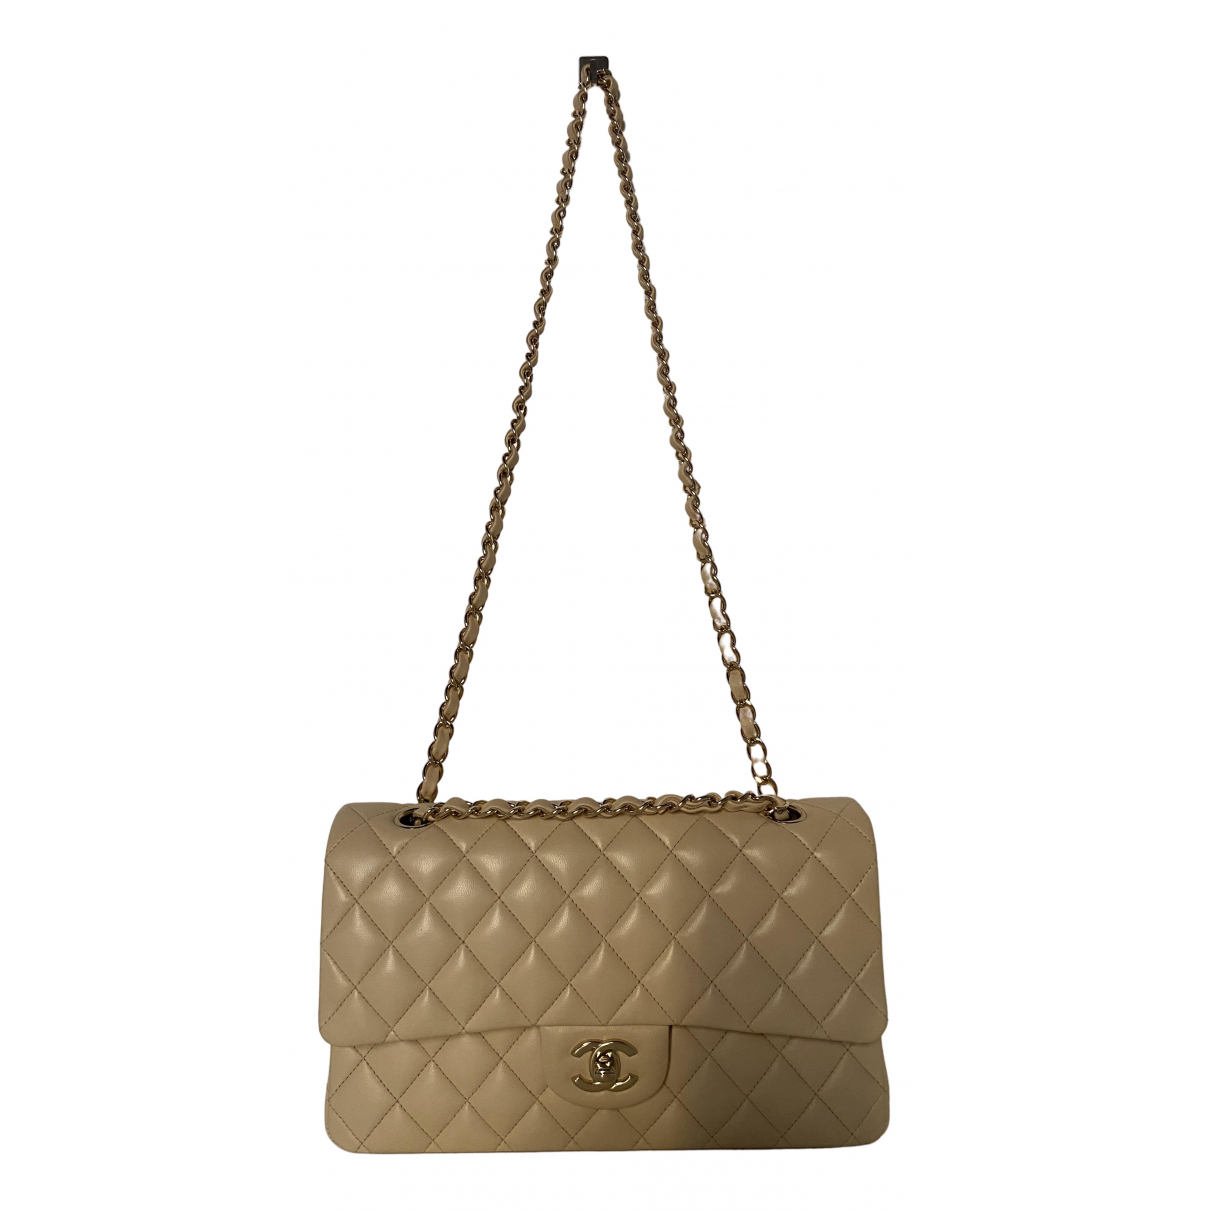 Chanel Timeless/Classique Beige Leather handbag for Women N